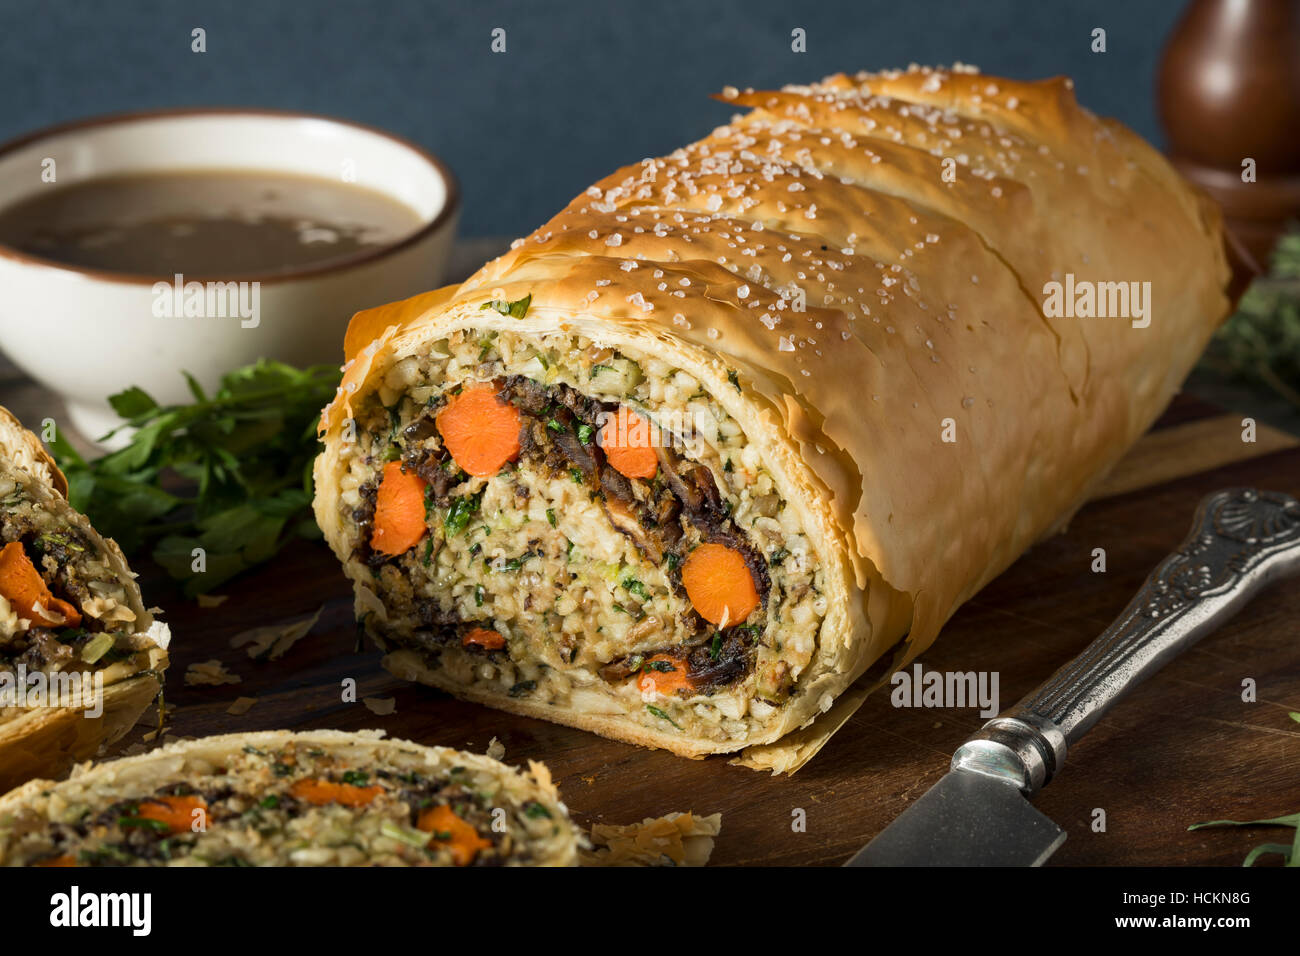 Homemade Holiday Vegan Wellington  with Carrots, Beans, Mushrooms Stock Photo